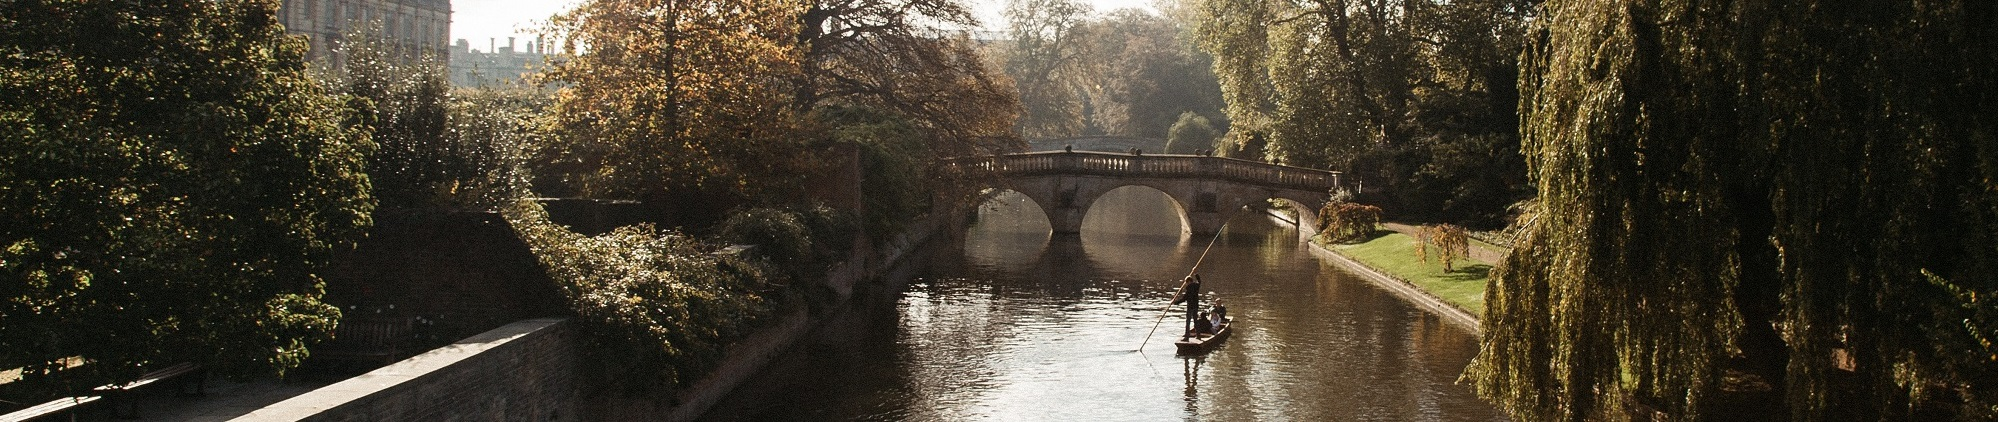 Why Cambridge? 7 reasons to stay a little longer